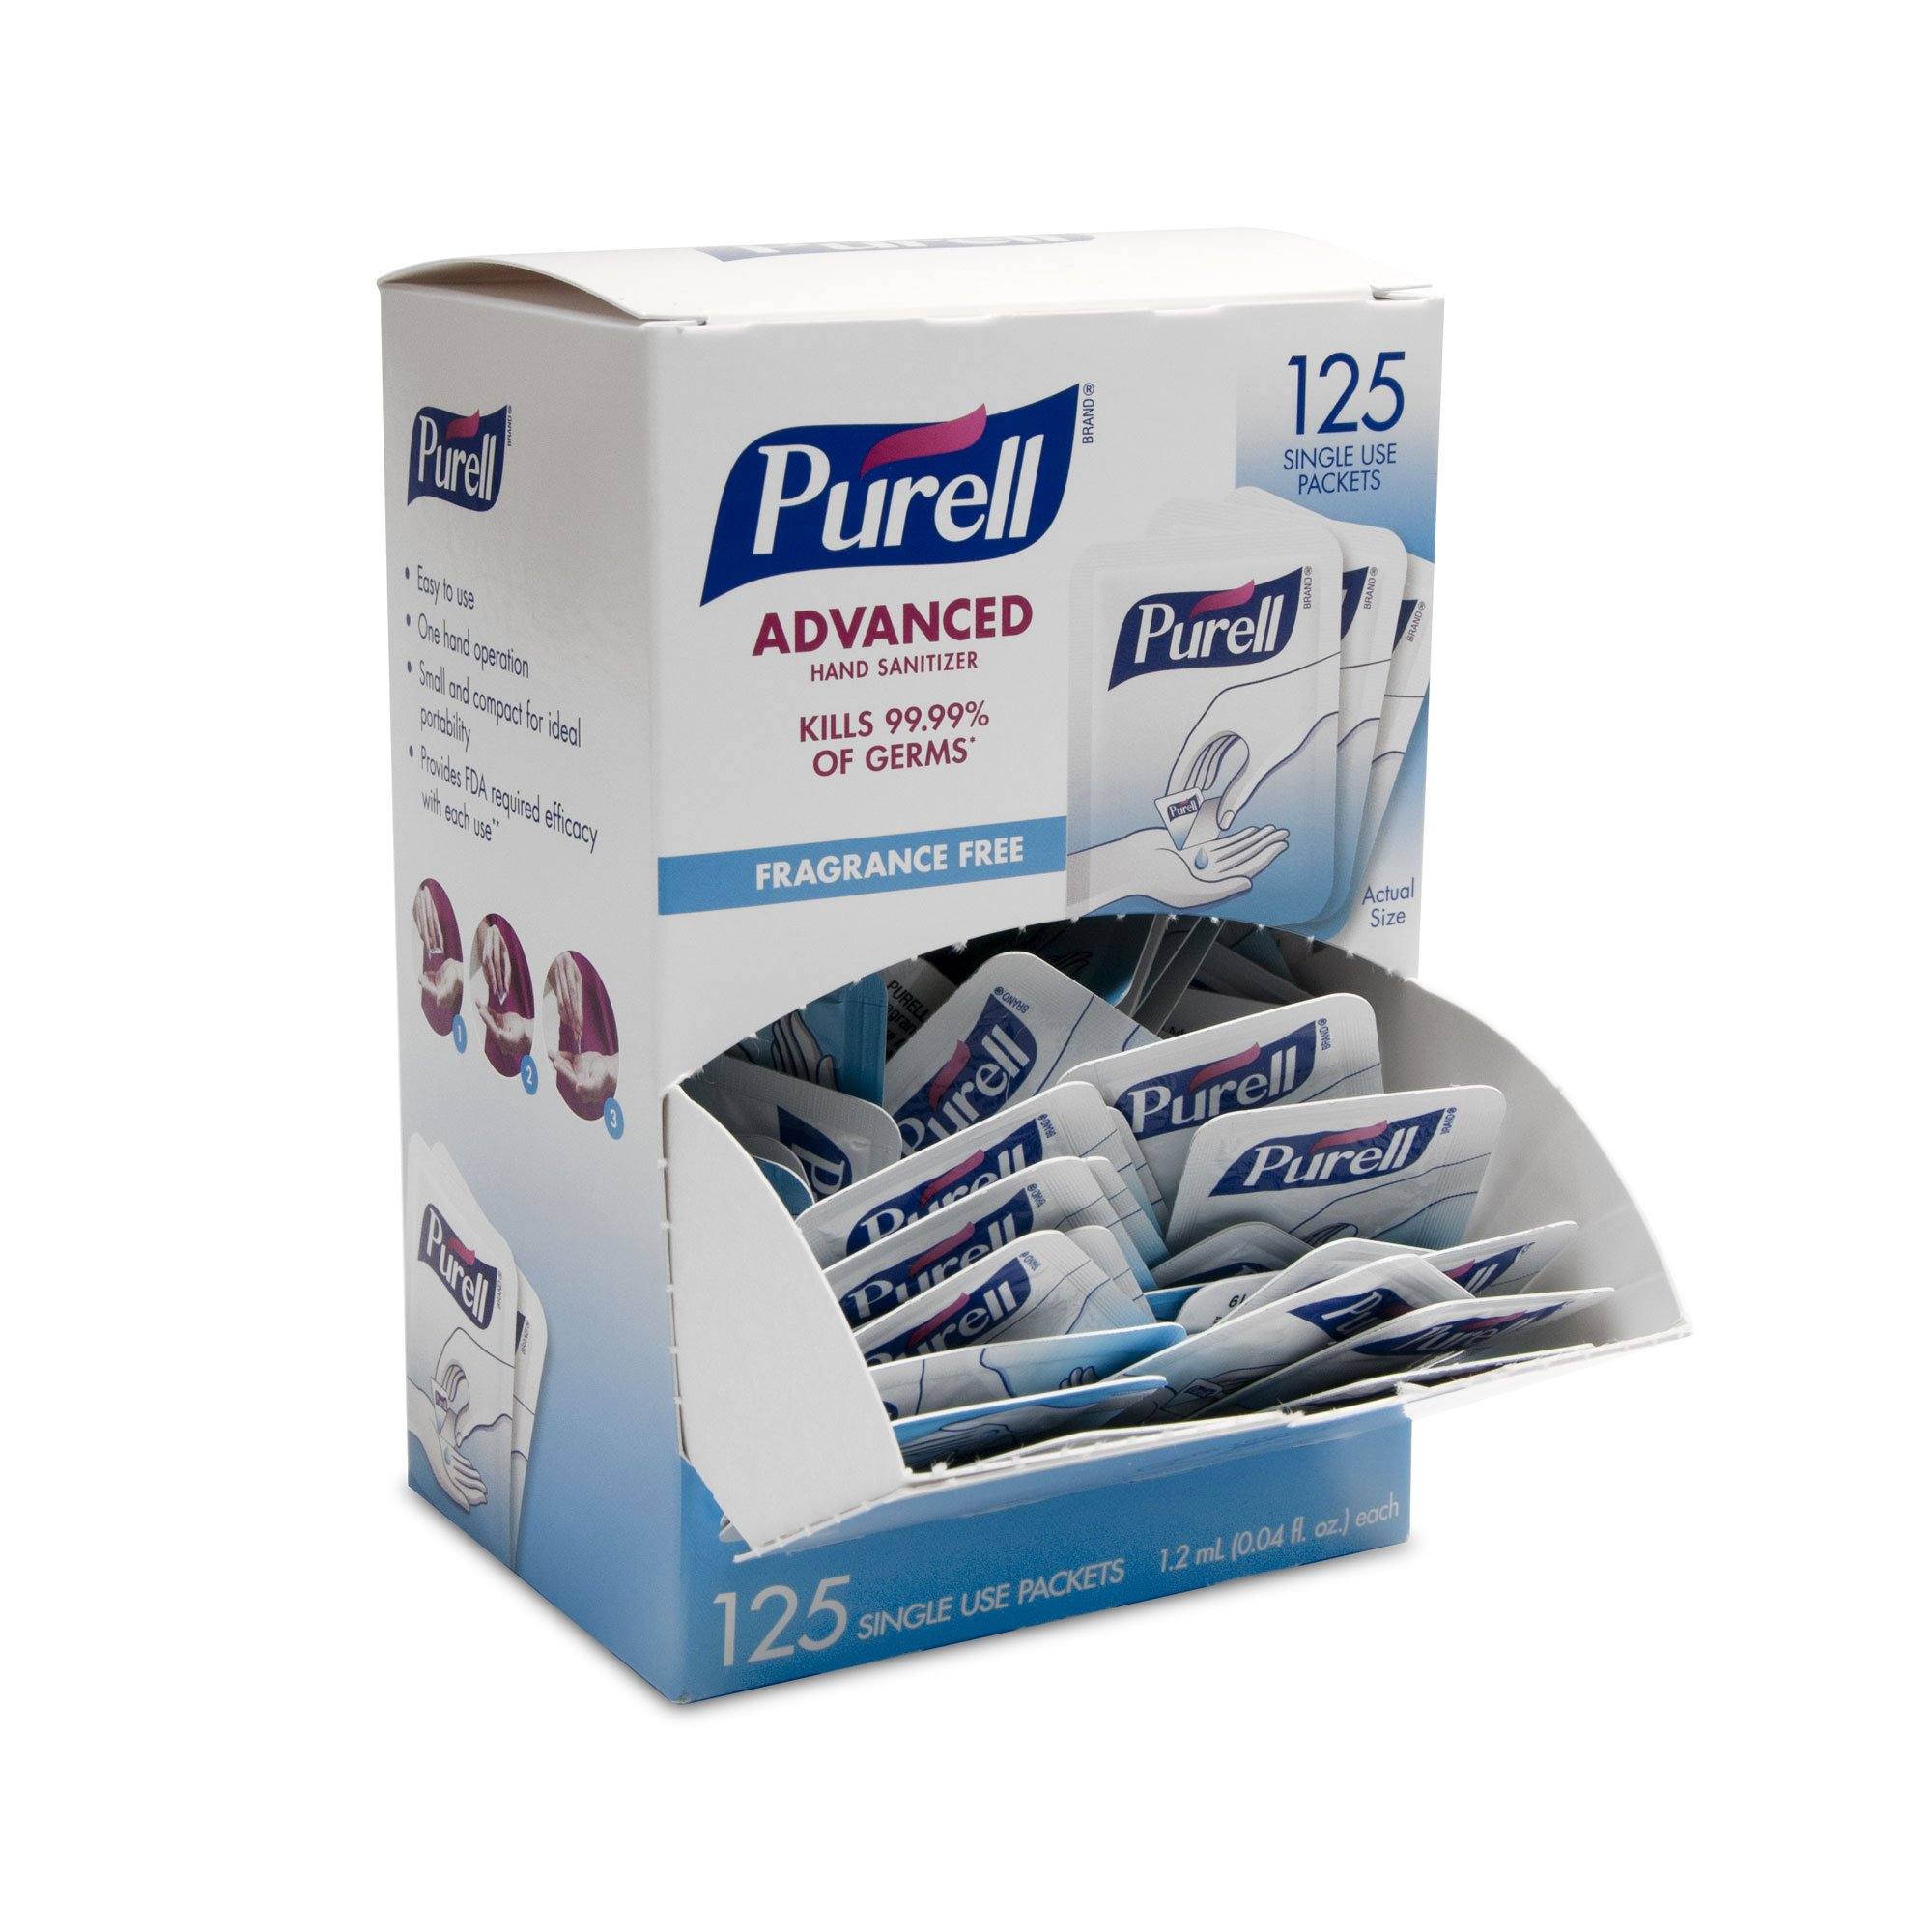 PURELL Advanced Hand Sanitizer Singles - Travel Size Single Use Individual Portable Packets, 125 count Self Dispensing Packets in a Display Box - 9620-12-125EC by Purell (Image #5)